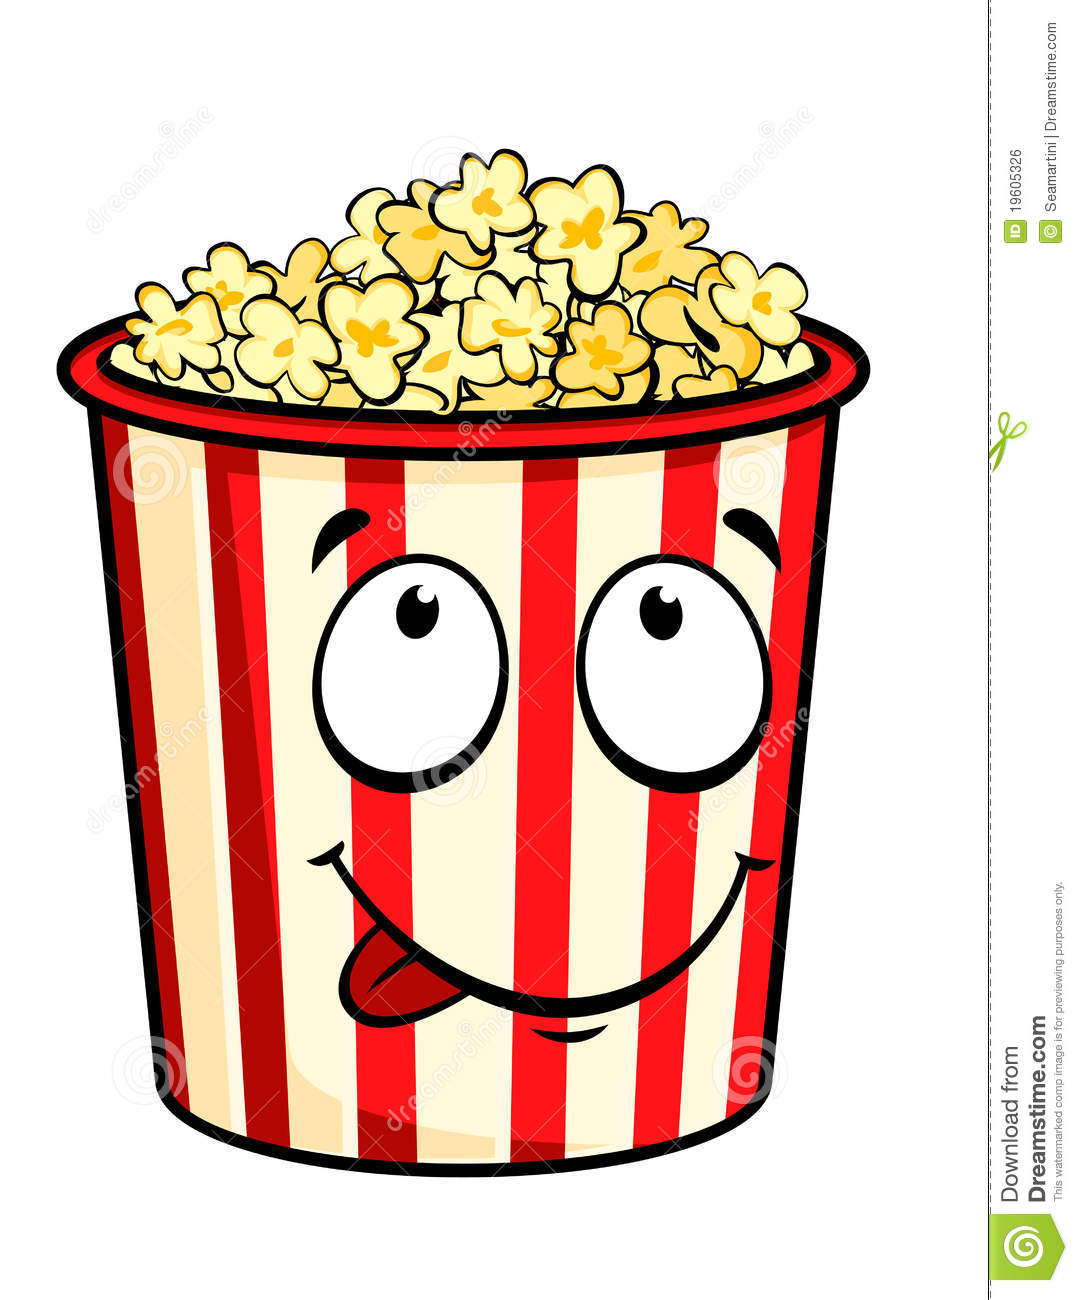 popcorn clipart and stock illustrations 1,133 popcorn